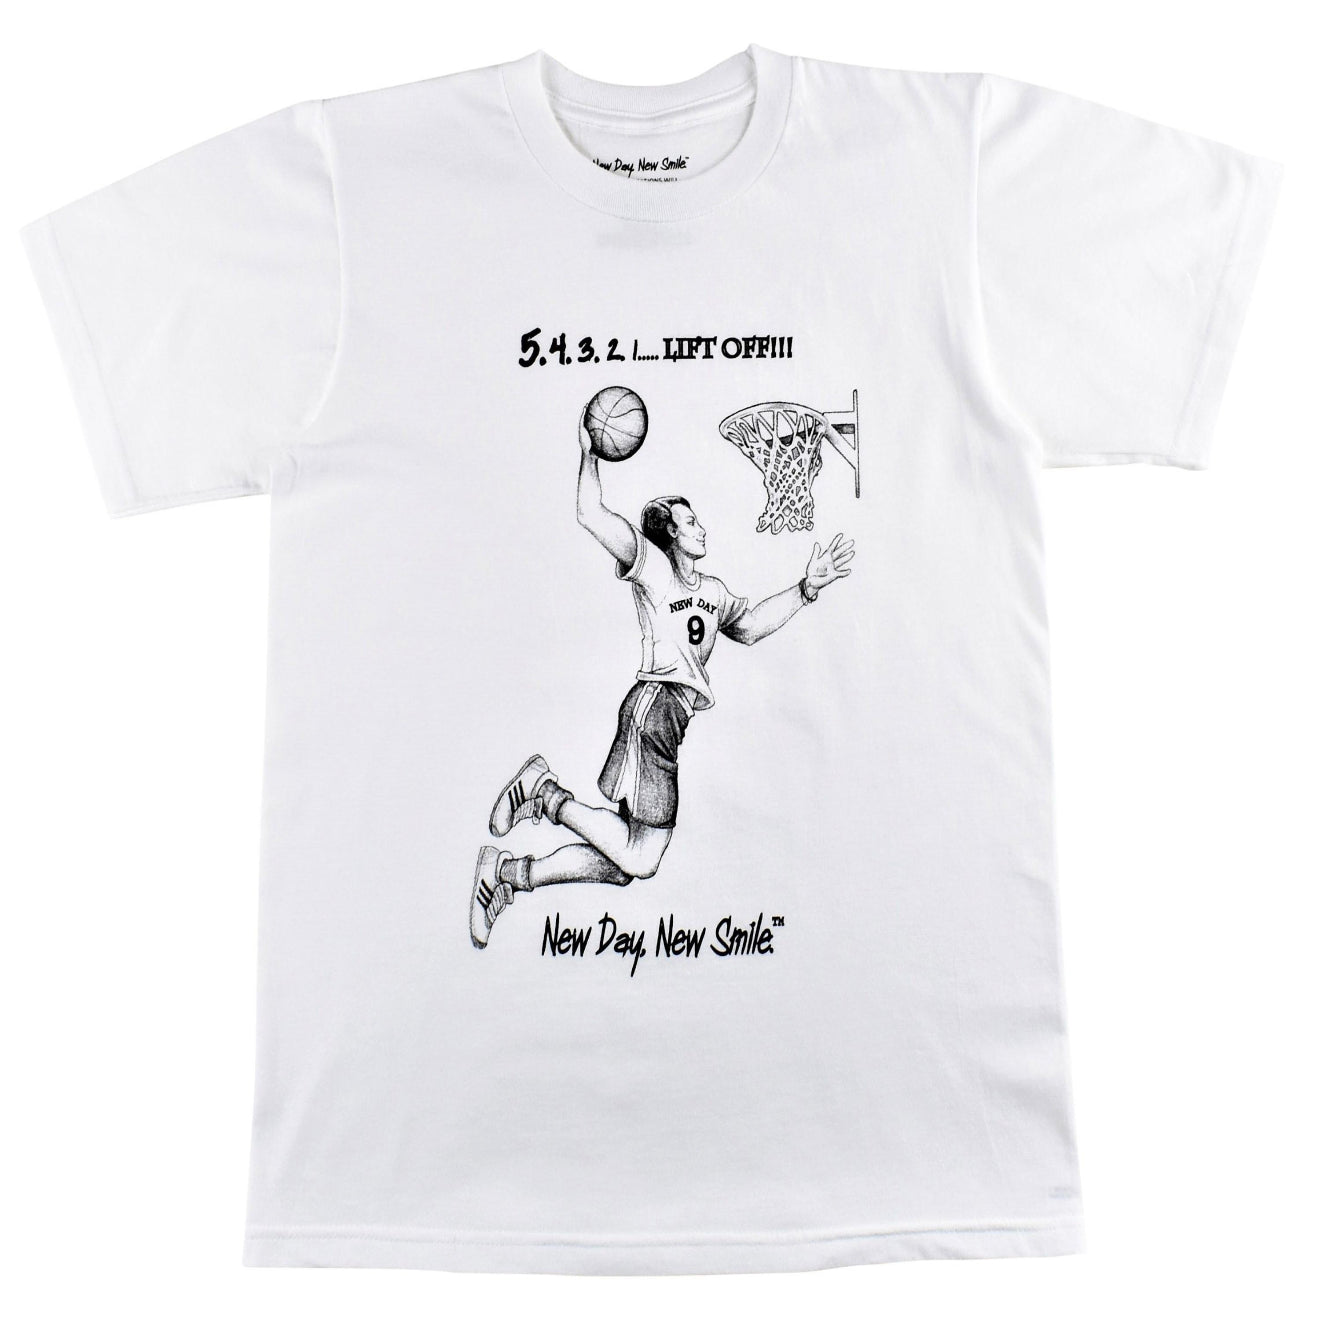 New Day New Smile Basketball player dunkin the ball t-shirt available at NewDayNewSmile.com